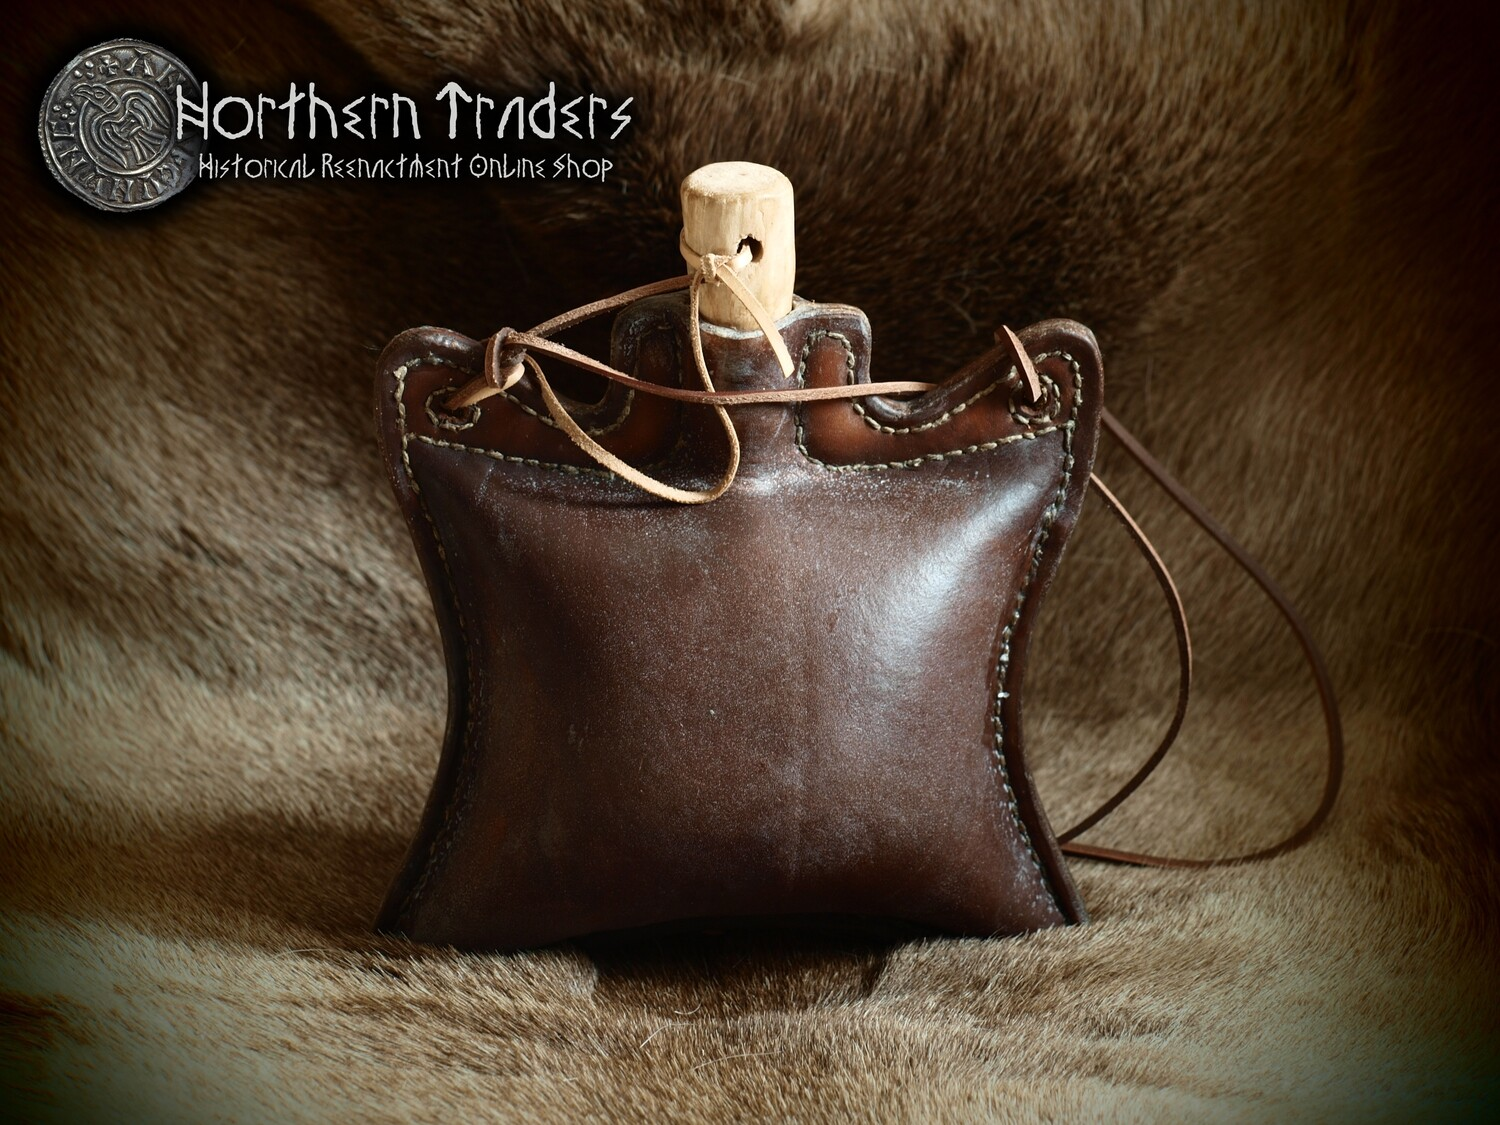 Leather Canteen - 1.2 liter